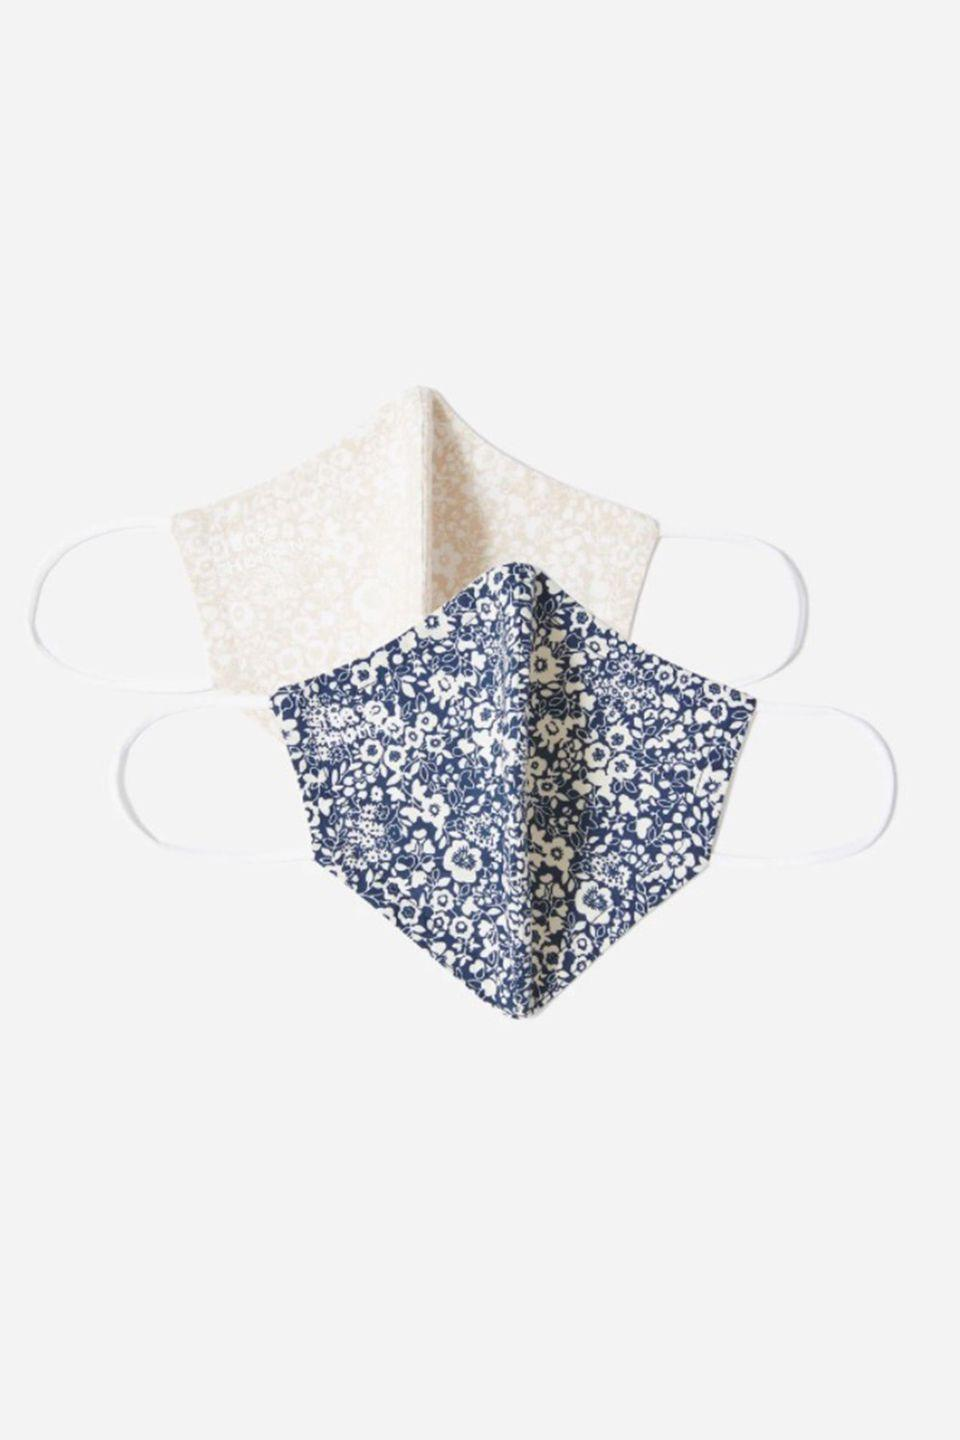 """<p><a class=""""link rapid-noclick-resp"""" href=""""https://go.redirectingat.com?id=127X1599956&url=https%3A%2F%2Fwww.everlane.com%2Fproducts%2Funisex-floral-mask-2-assorted%3Fcollection%3Dface-masks&sref=https%3A%2F%2Fwww.harpersbazaar.com%2Fuk%2Ffashion%2Fwhat-to-wear%2Fg32458277%2Fshop-fabric-face-masks%2F"""" rel=""""nofollow noopener"""" target=""""_blank"""" data-ylk=""""slk:SHOP NOW"""">SHOP NOW</a></p><p>Each Everlane reusable non-medical mask is made from a double-layer woven fabric and features elastic ear loops for a little stretch and a lot of comfort. For optimal use, Everlane suggest washing the masking before using and after each wear. Once it's on, do your best to avoid adjusting.</p><p>£12, Everlane </p>"""